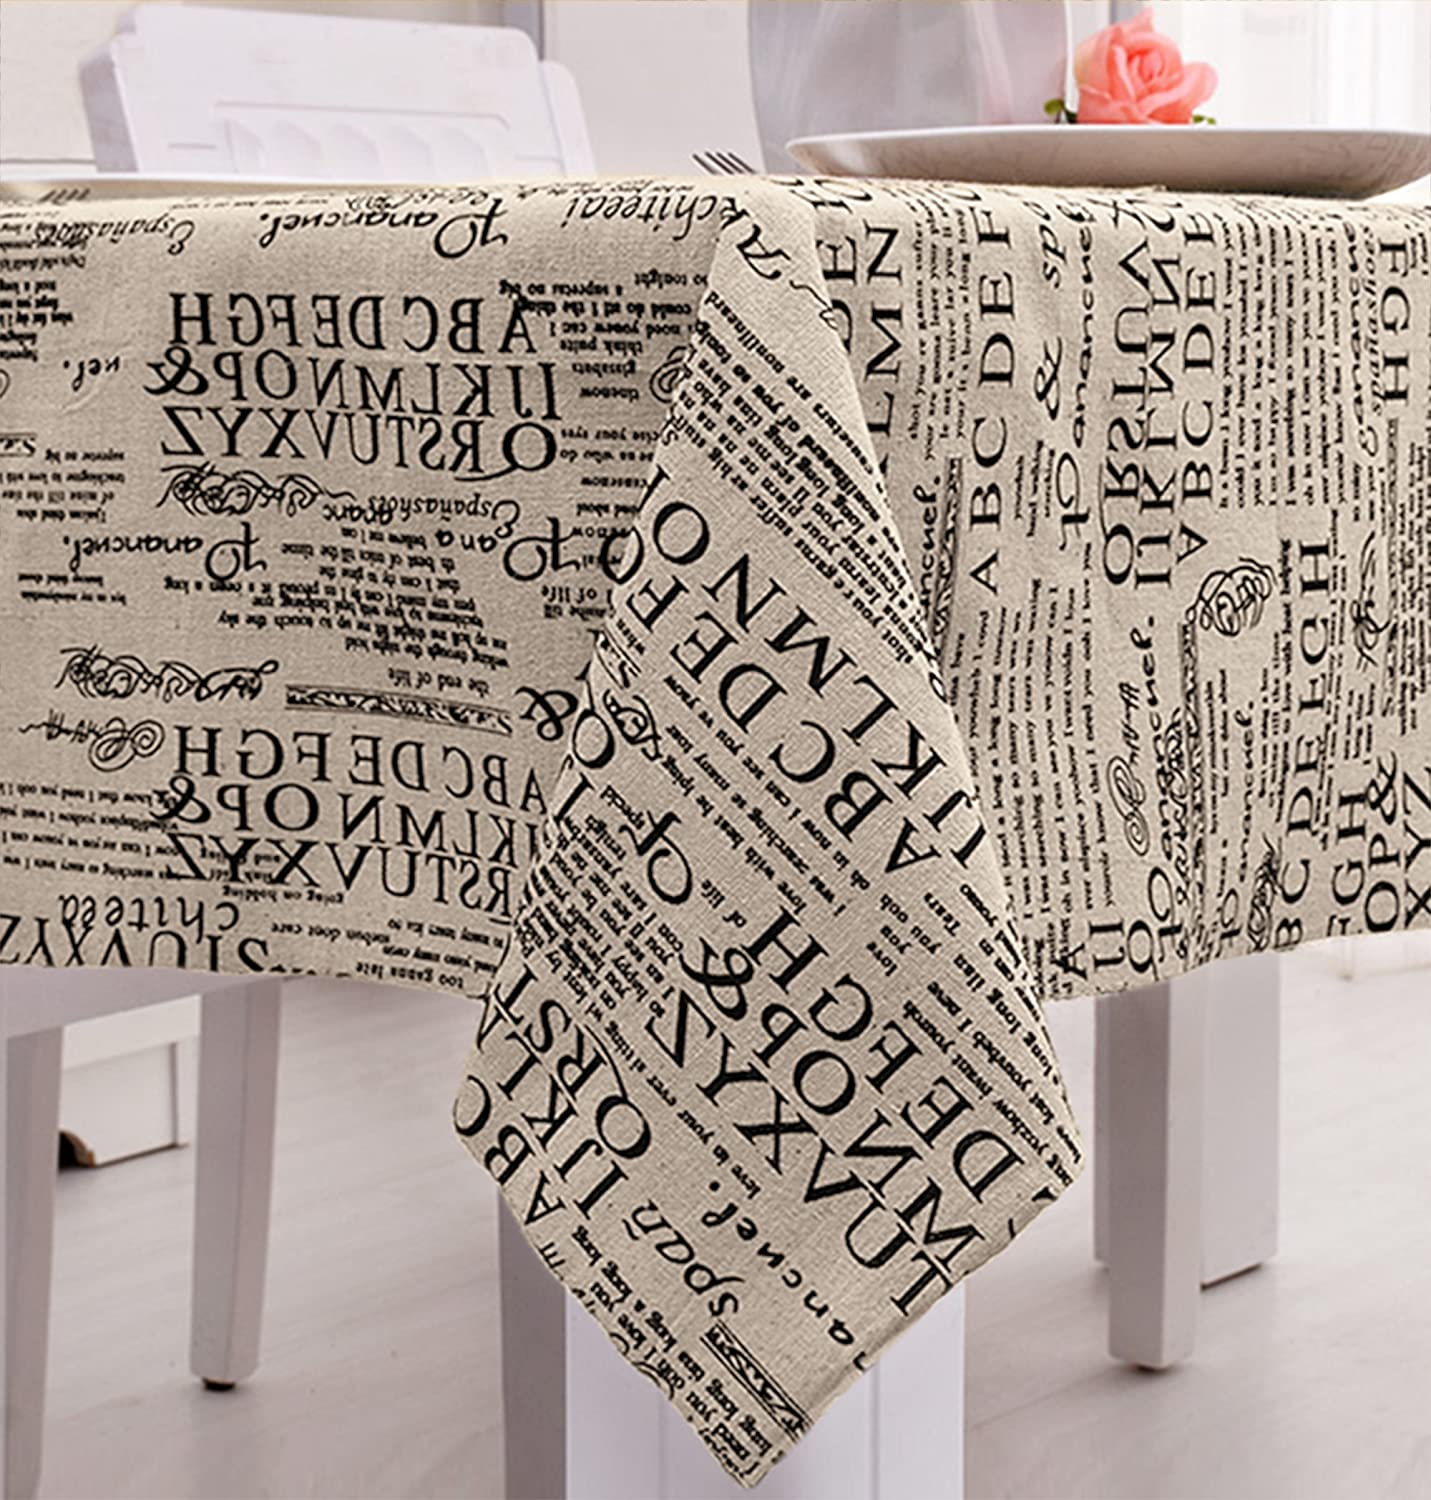 LINENLUX Map Letter Printed Tablecloth Macrame Lace Table Cover for Round Rectangular Oval Table Letter 1 23 x 23 in